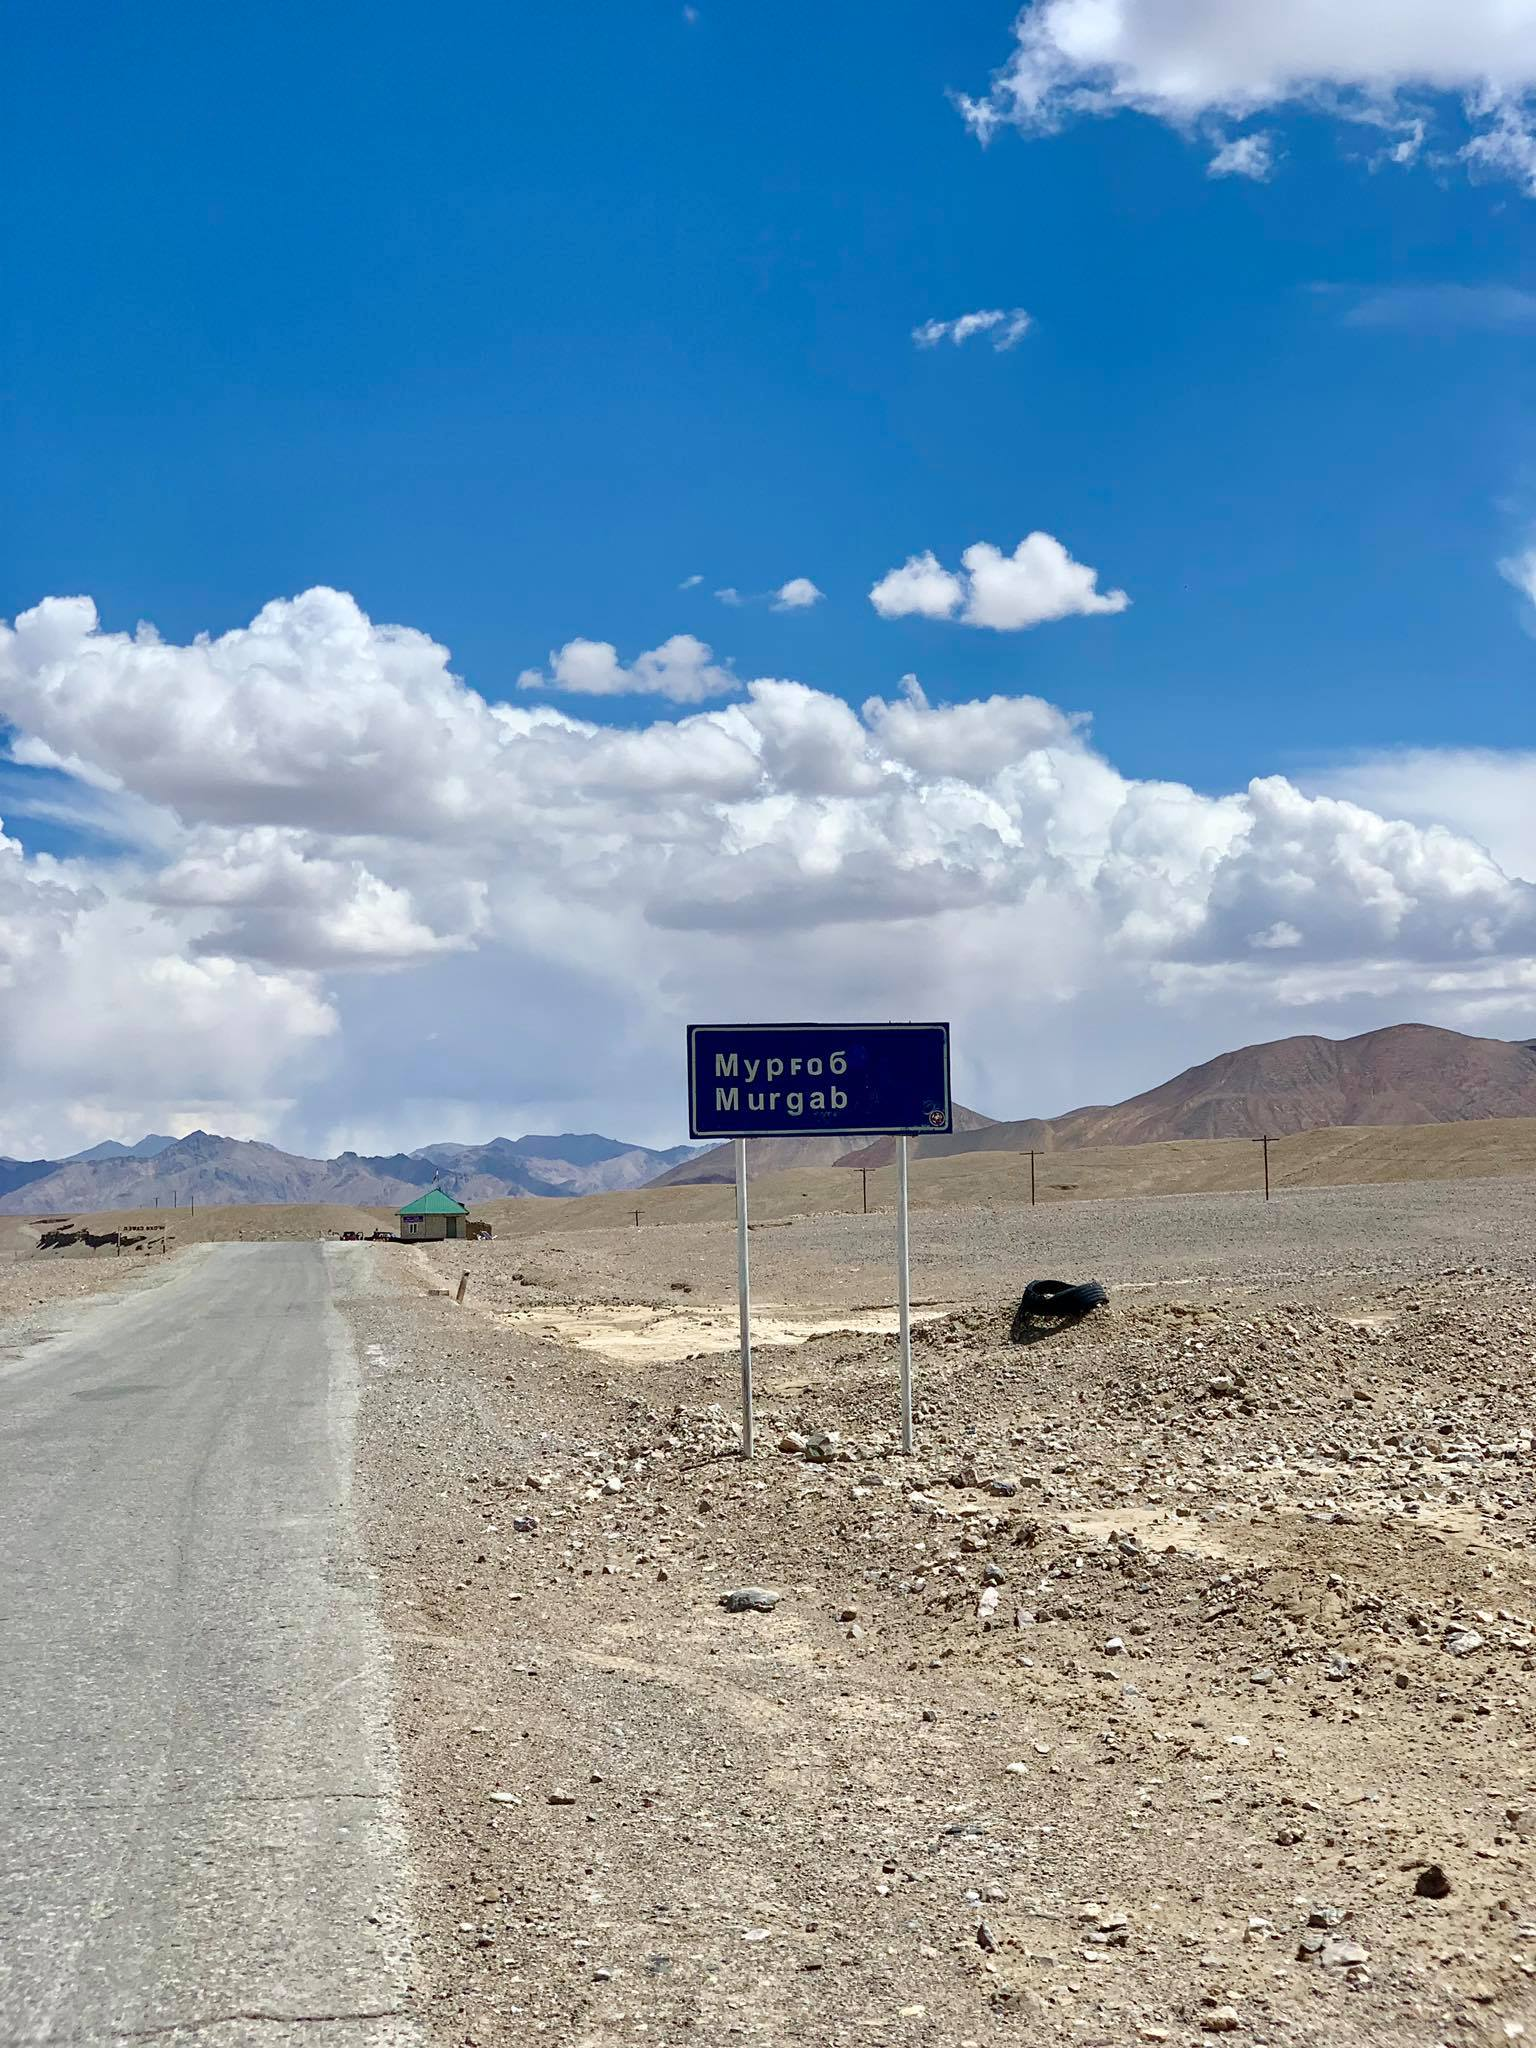 Kach Solo Travels in 2019 Our unexpected last stop during our Pamir Highway Roadtrip9.jpg